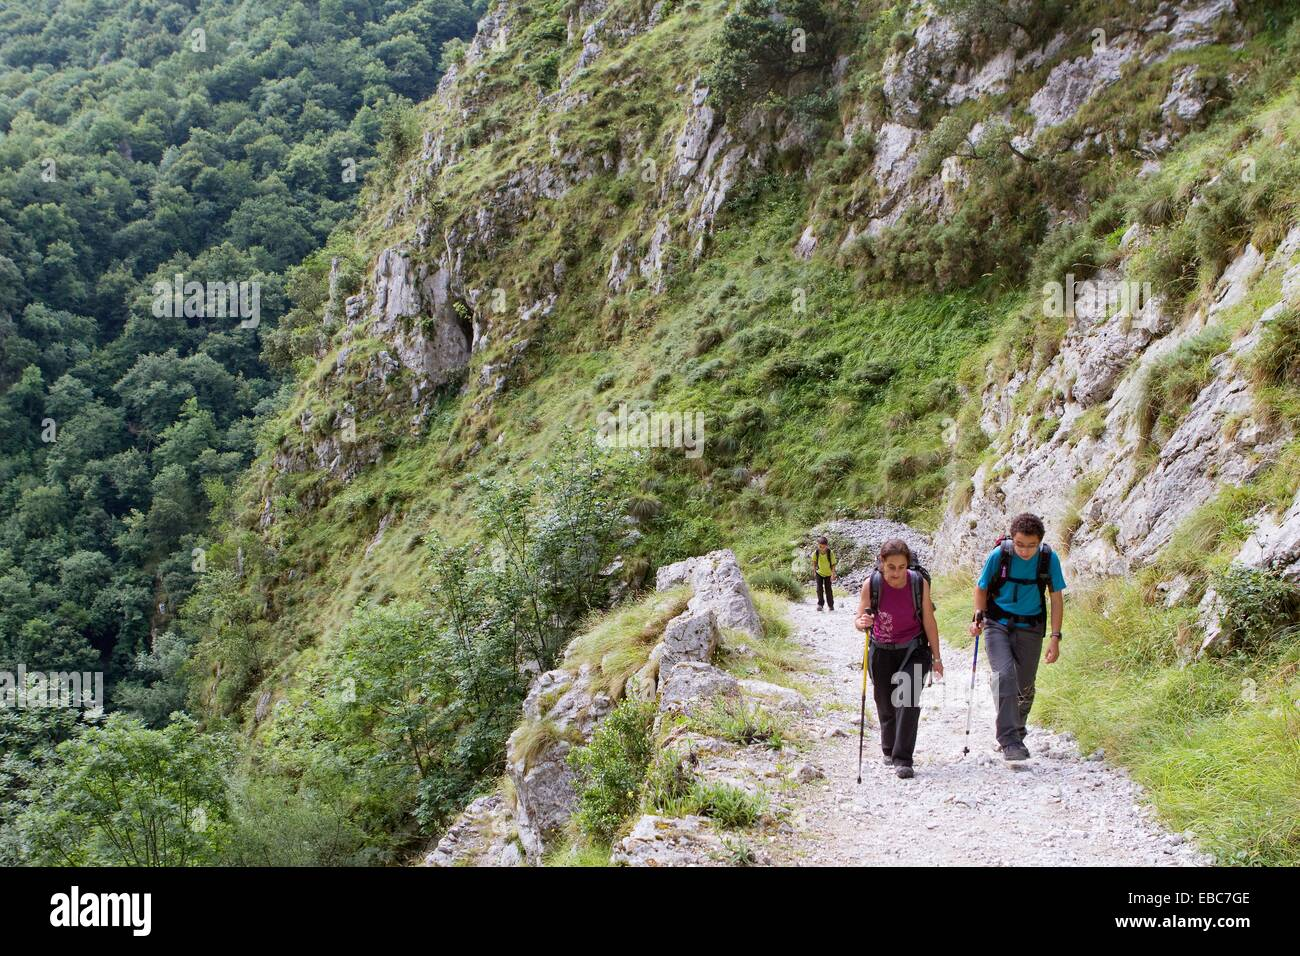 adult area boy Cantabria canyon child color image day eco-tourism equipment Europe excursion forest gorge Green - Stock Image